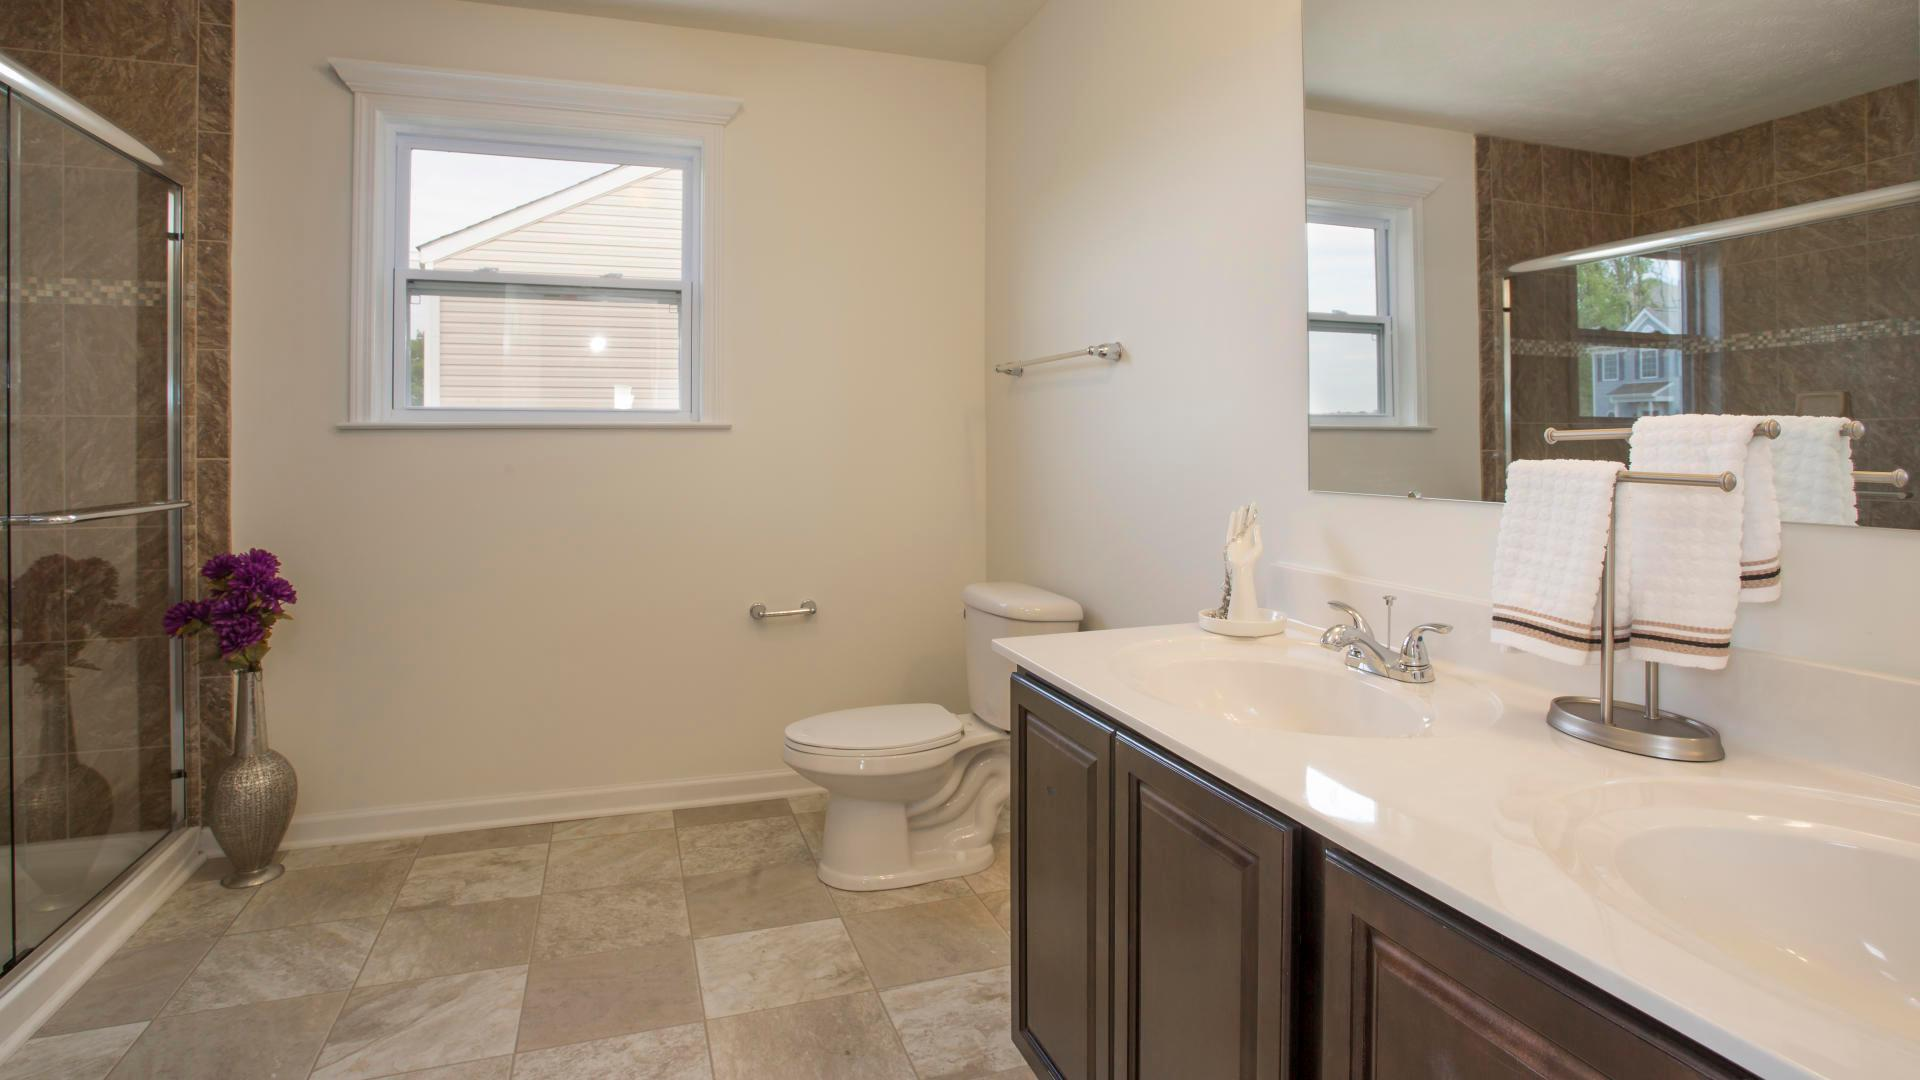 Bathroom featured in the Rockford By Maronda Homes in Columbus, OH